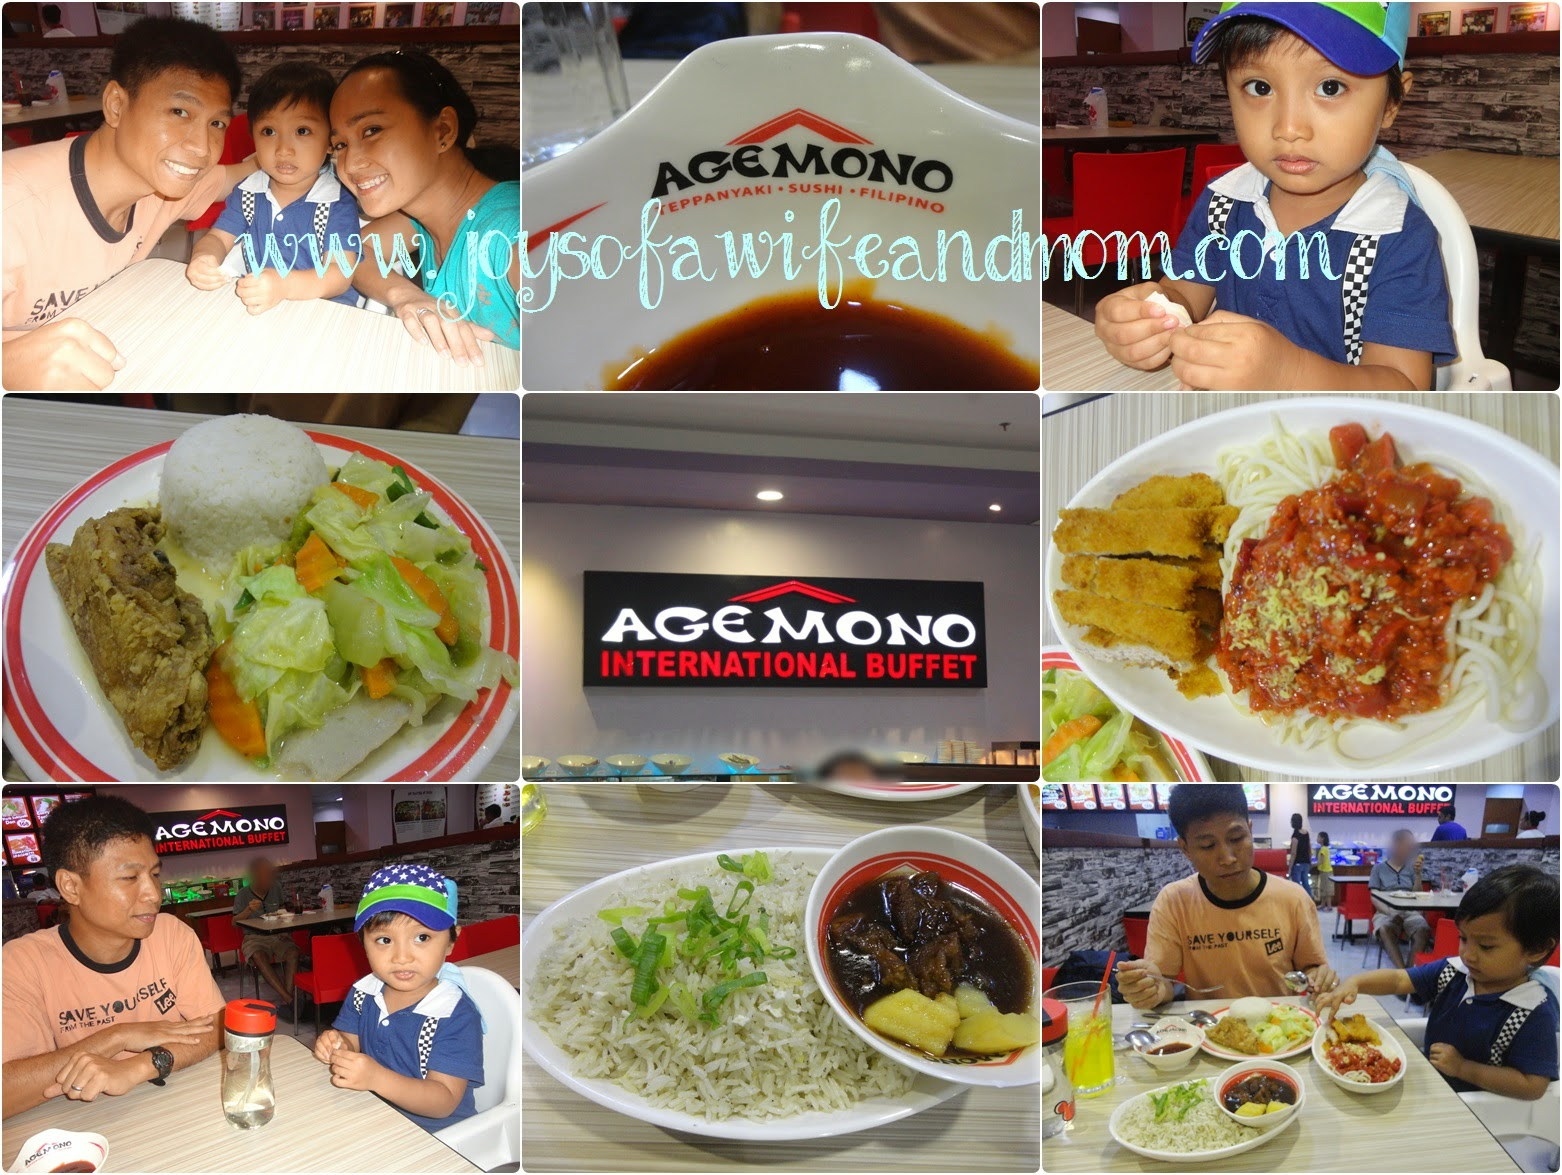 Agemono International Buffet At Robinson's Place Malolos